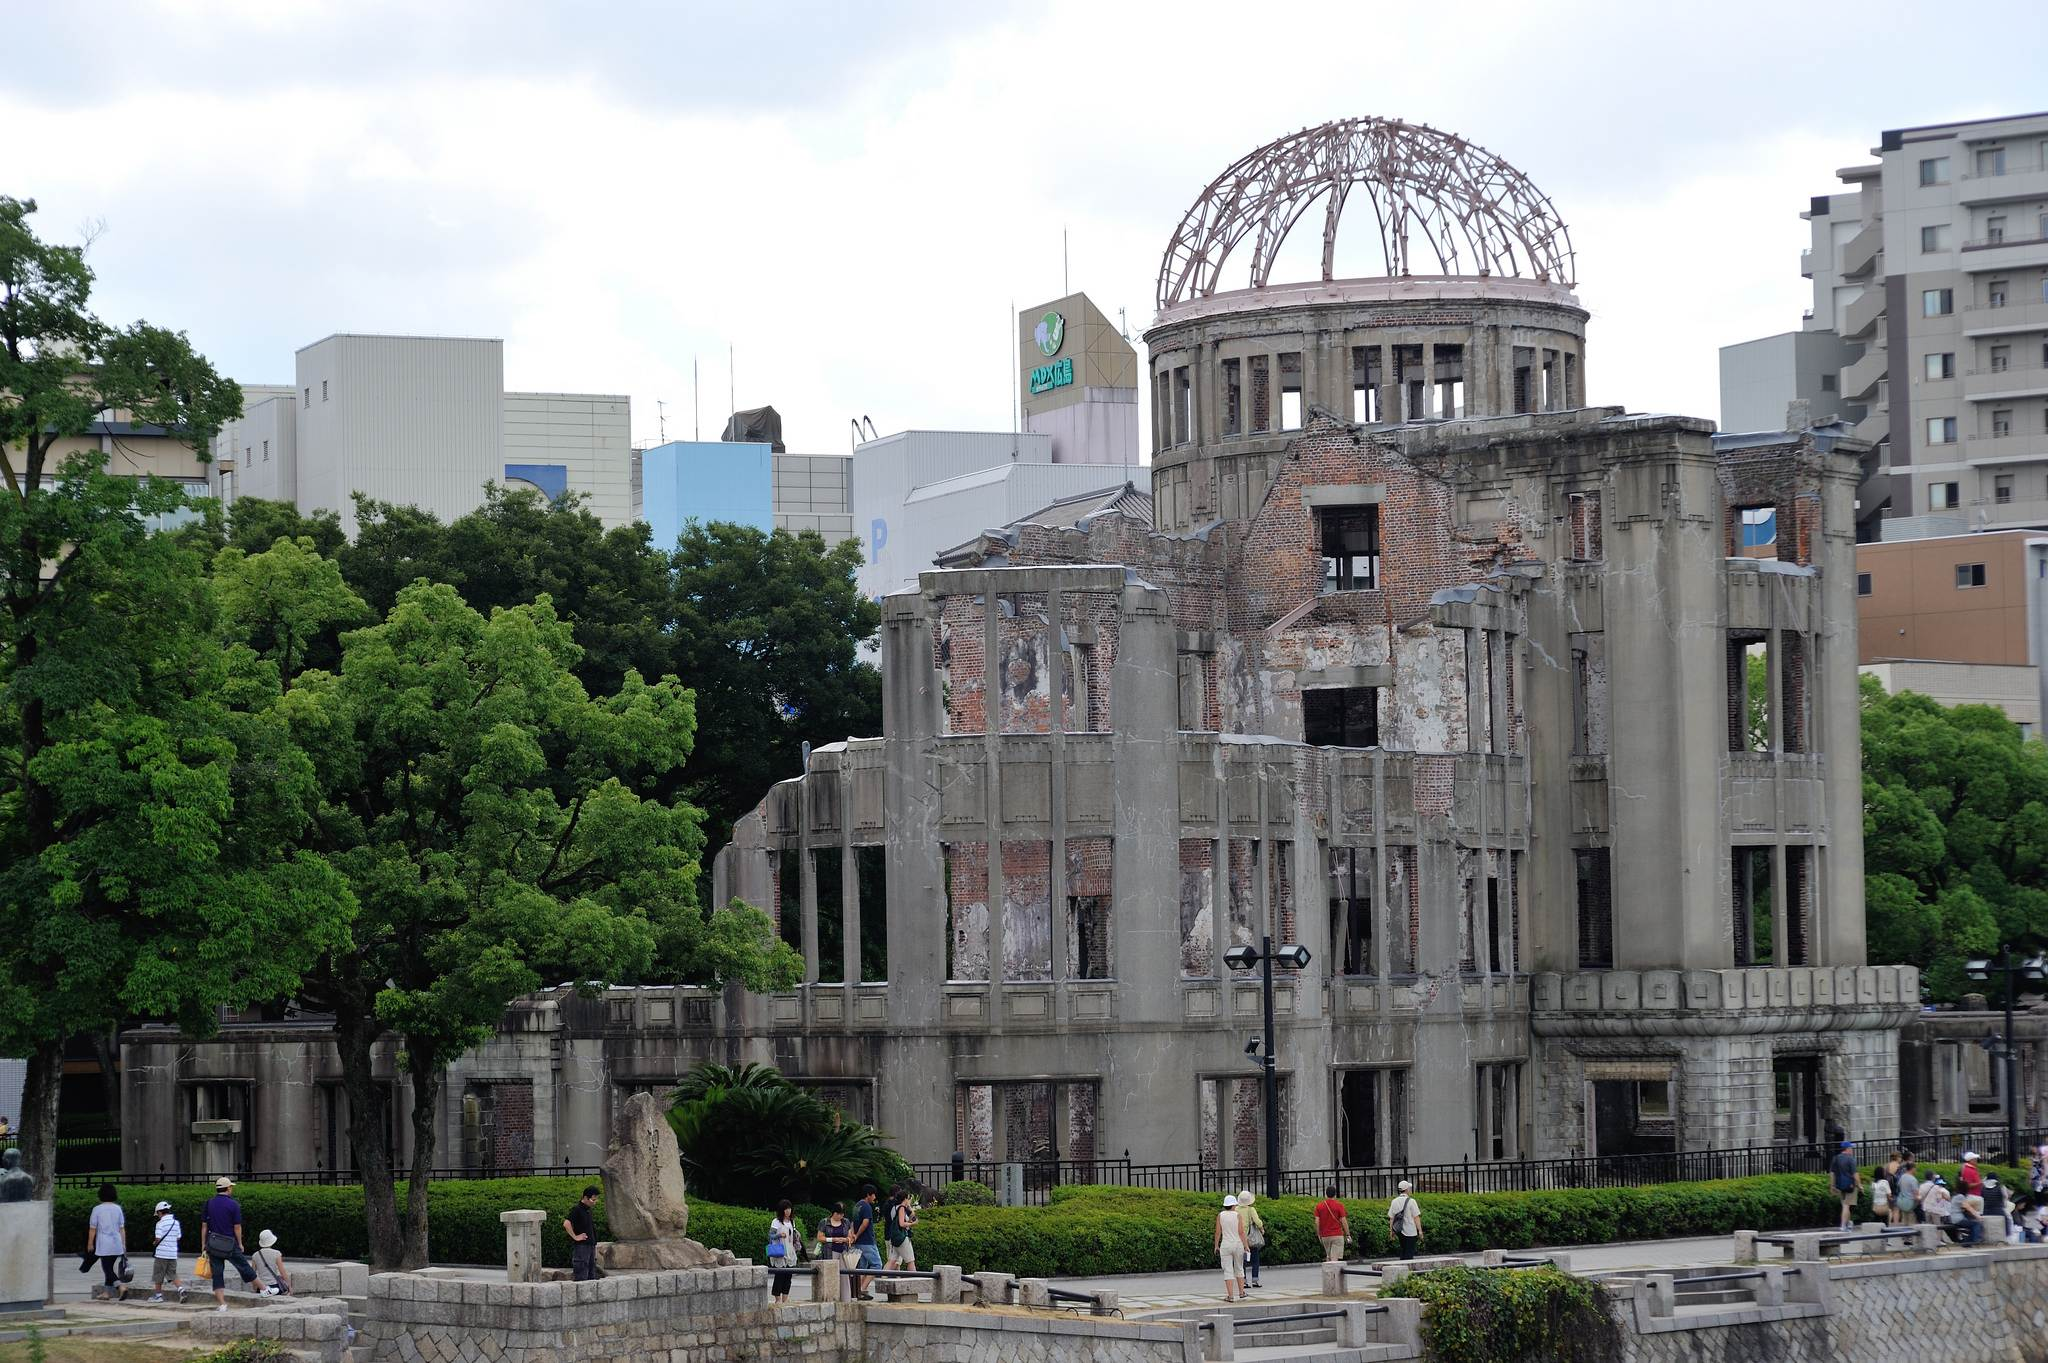 a bomb dome2 Walk around Genbaku Dome in Hiroshima